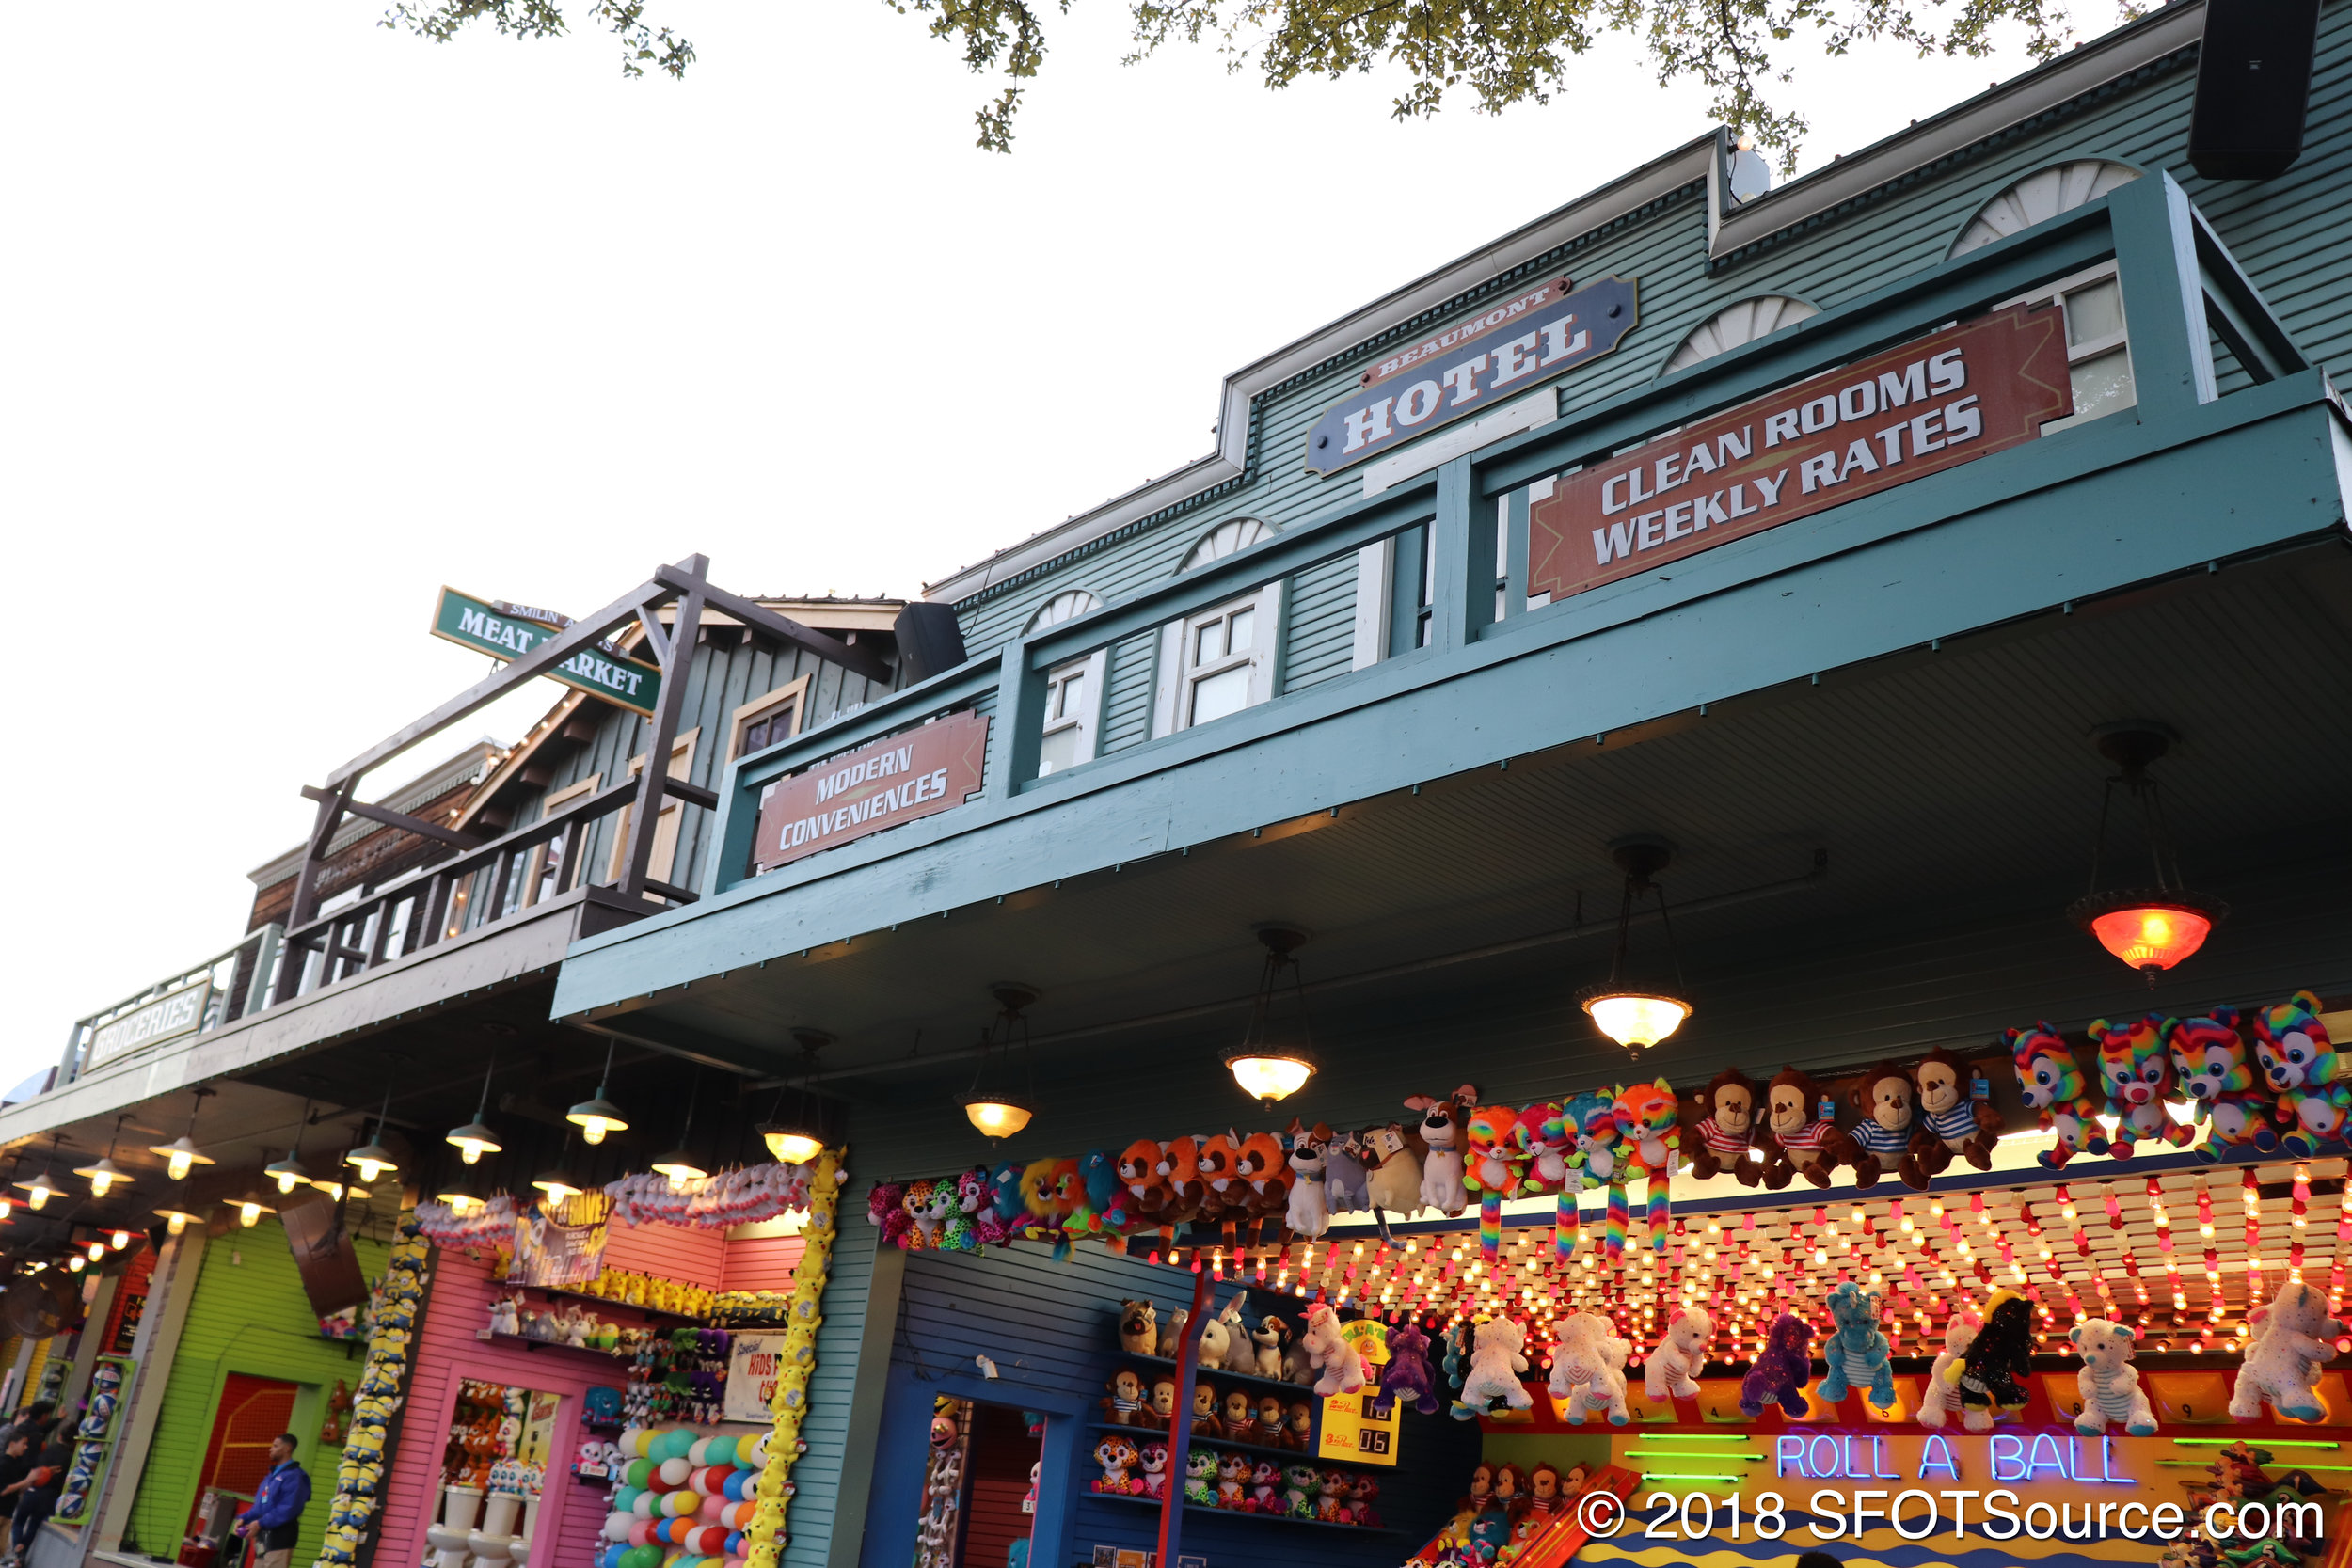 Another look at the theming above the games midway.